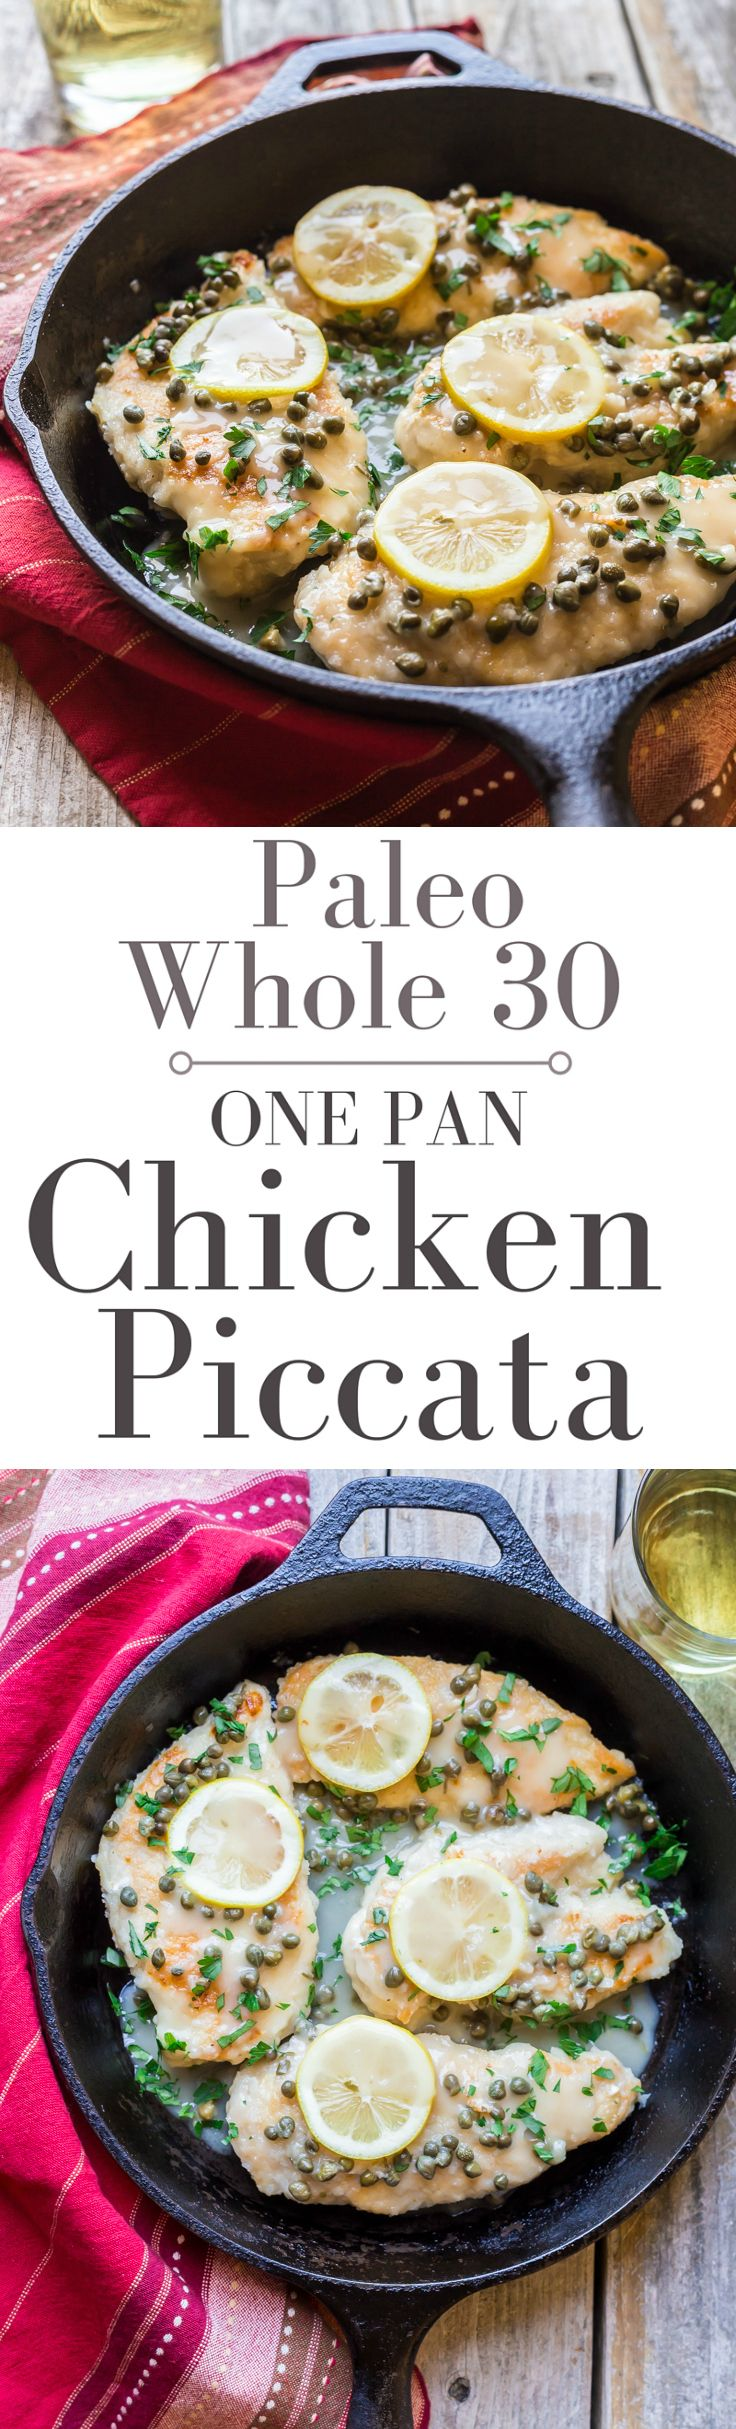 Easy Weeknight Chicken Piccata,ready in less than 30 Minutes! This recipe is Low Carb, Paleo, Whole 30, low calorie, gluten free, and dairy free